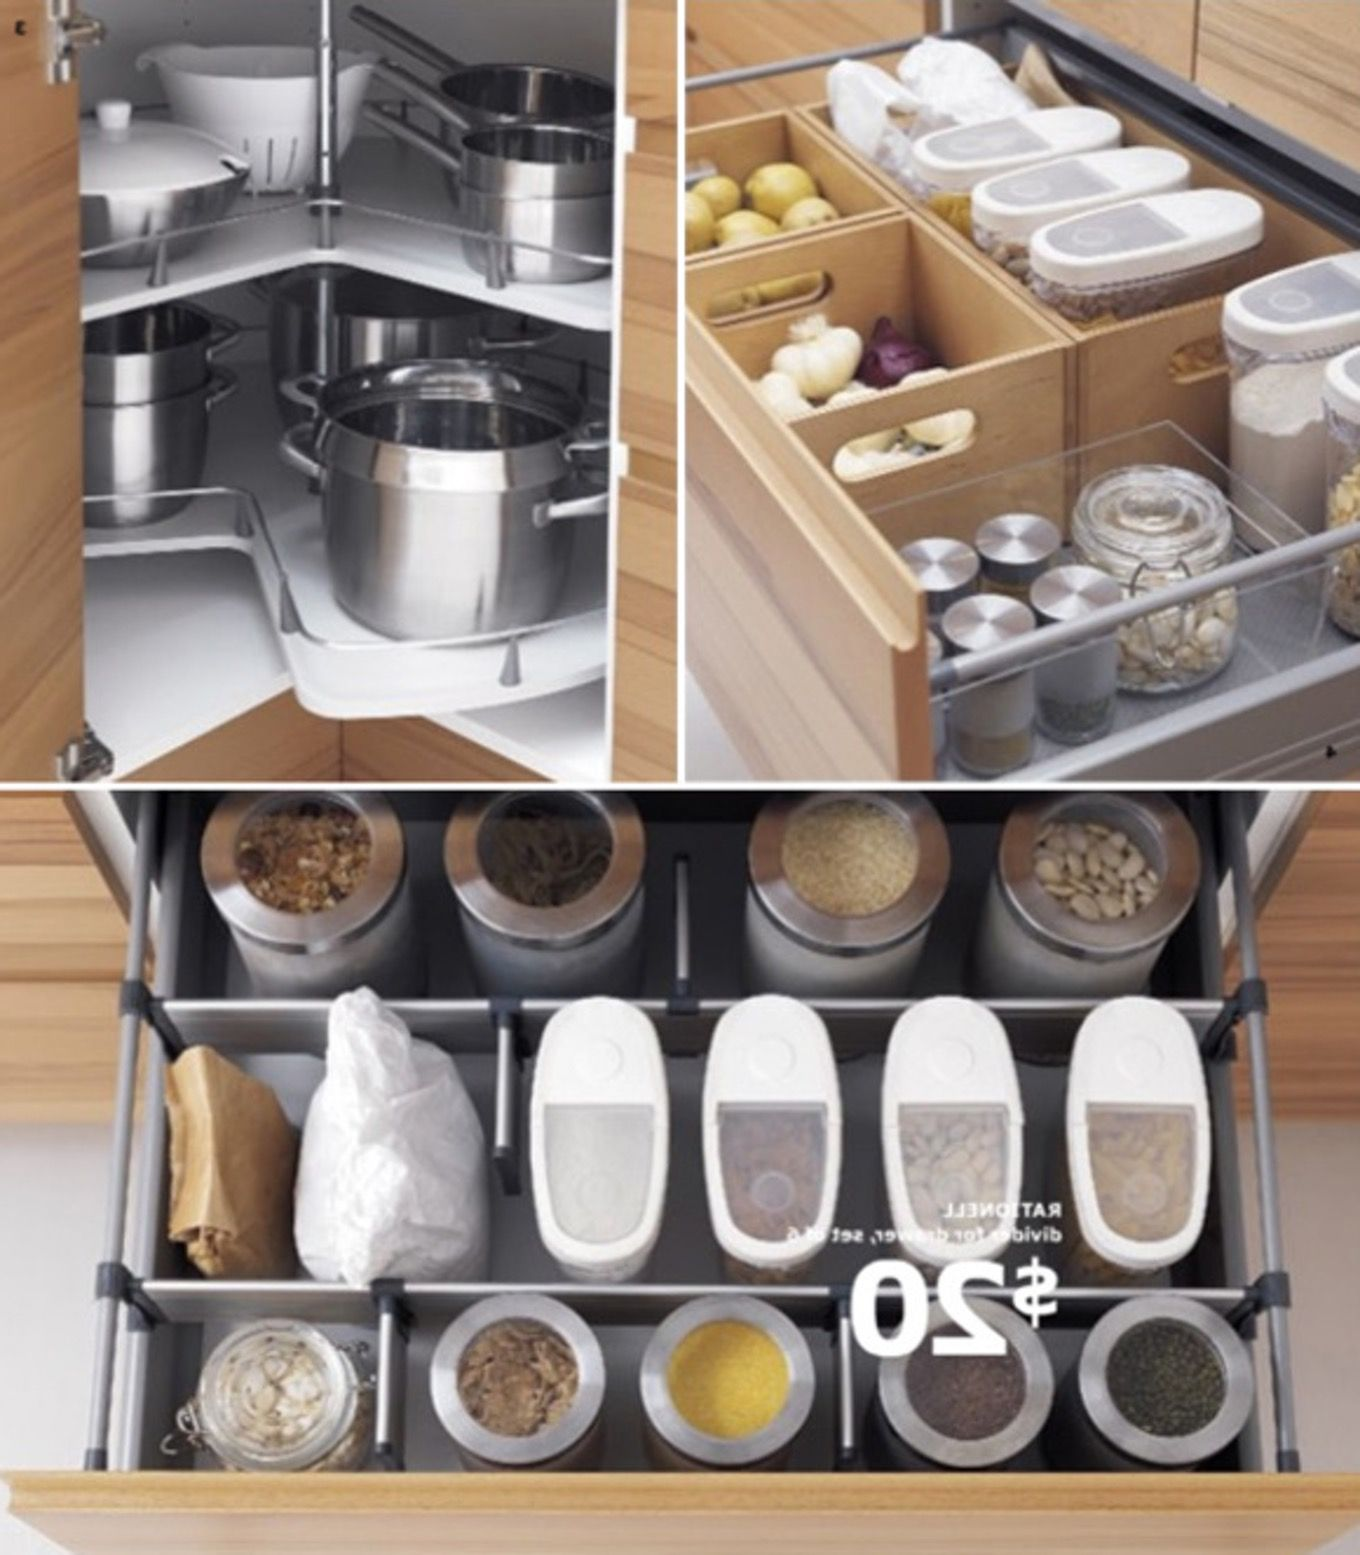 Image Result For Kitchen Drawer For Bake Center Ikea Kitchen Storage Kitchen Drawer Organization Ikea Kitchen Organization,United Airlines Baggage Allowance India To Usa